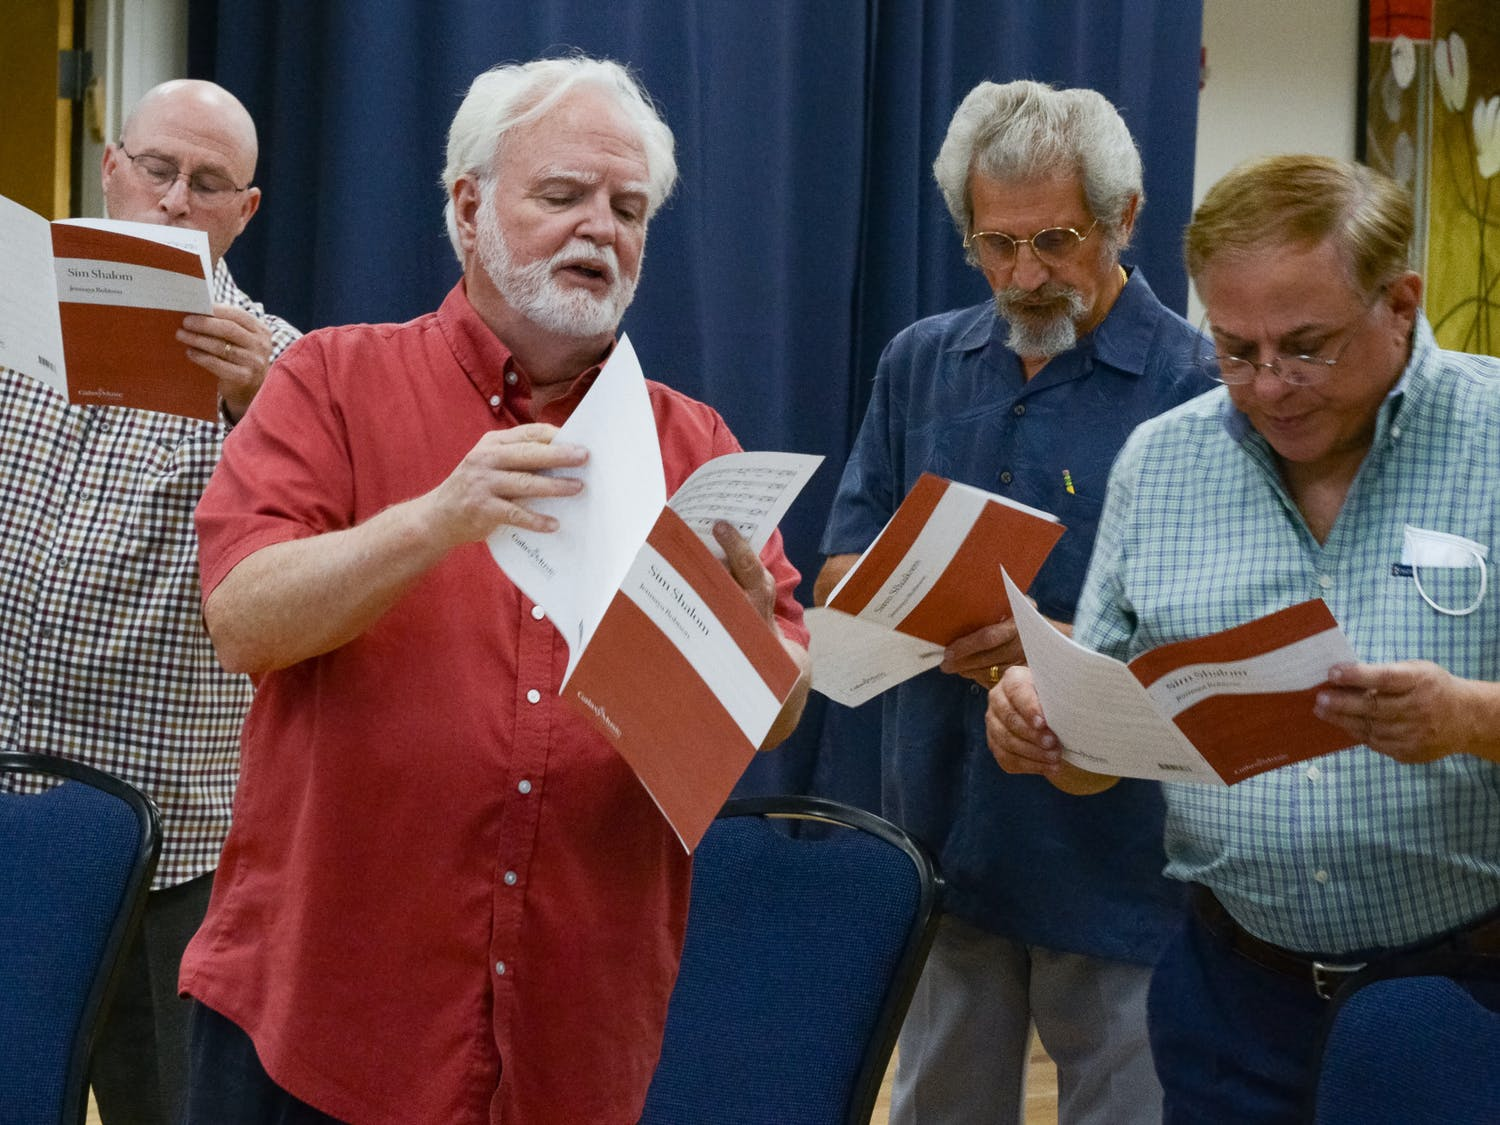 """Willard Kesling (second from left), a UF choral professor and music director and conductor for the ShabbaTones Jewish choir, leads the baritone section of the ShabbaTones in a choir practice on Wednesday, July 28, 2021. """"I will not let art, not let culture die,"""" Kesling said, before the group began their first in-person choir practice since the COVID-19 pandemic halted performances in early 2020."""